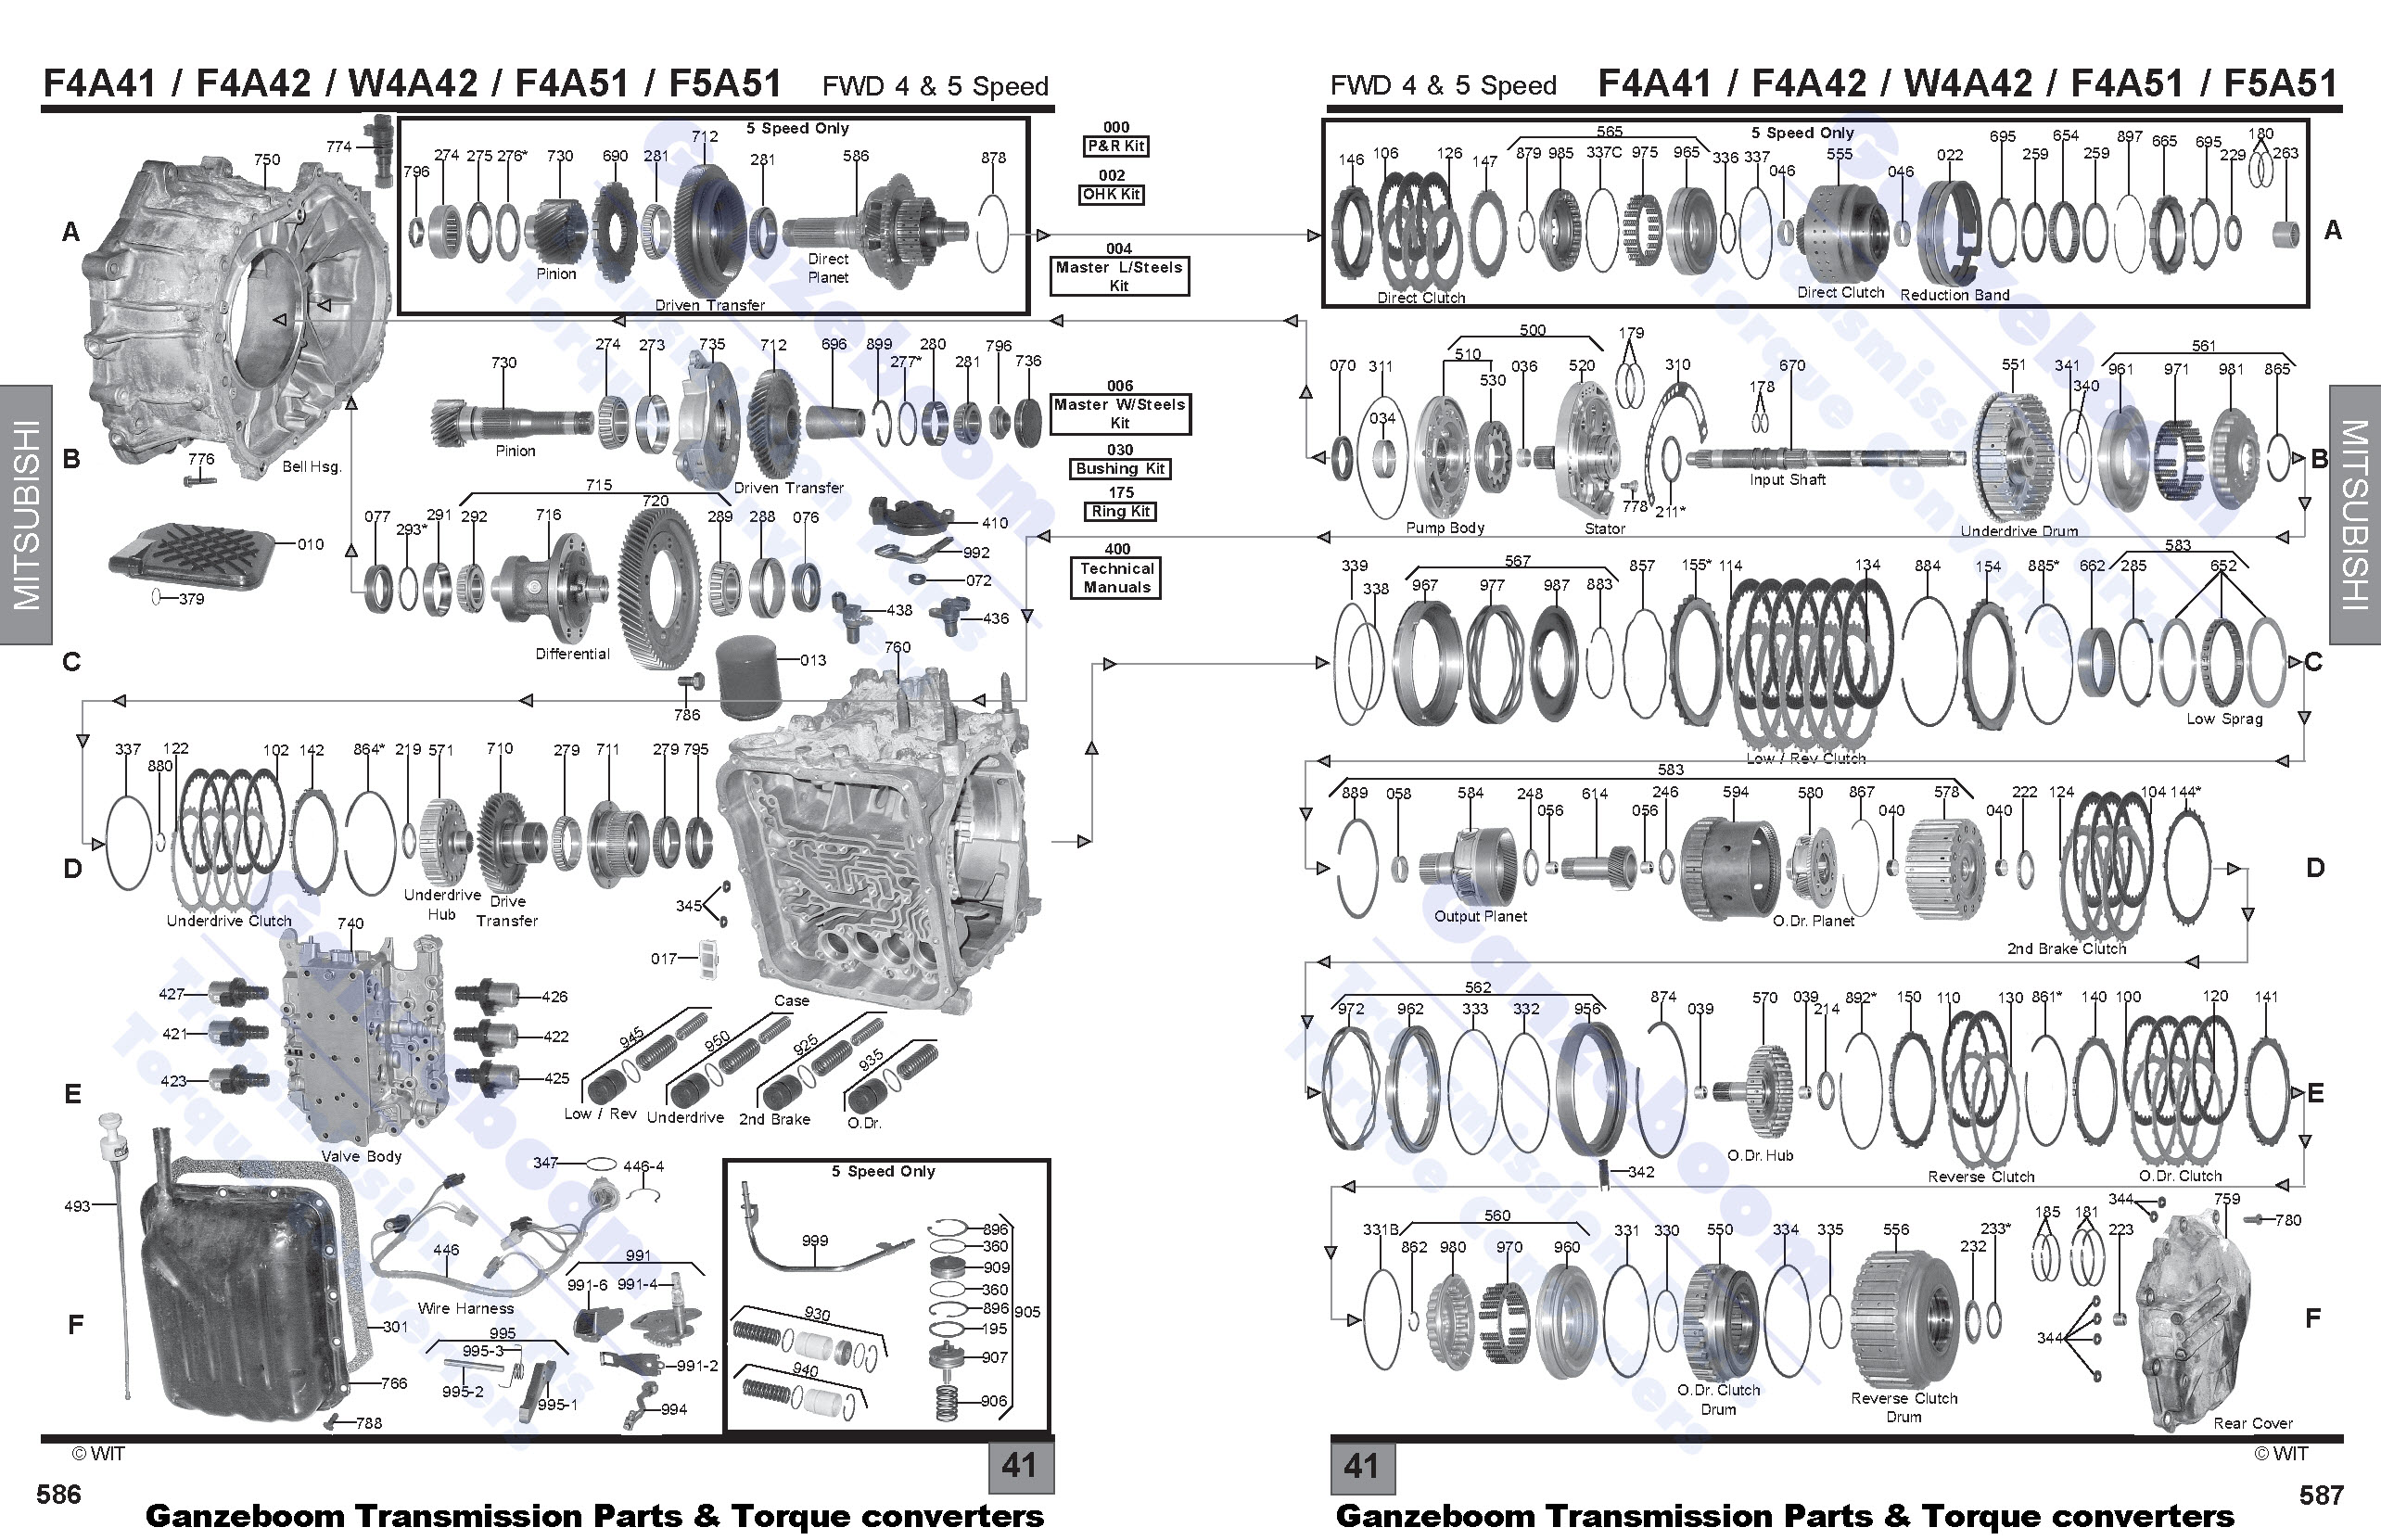 Wiring Diagram Hyundai Trajet Best Secret F4a41 Toyota Previa Accent Hotwire